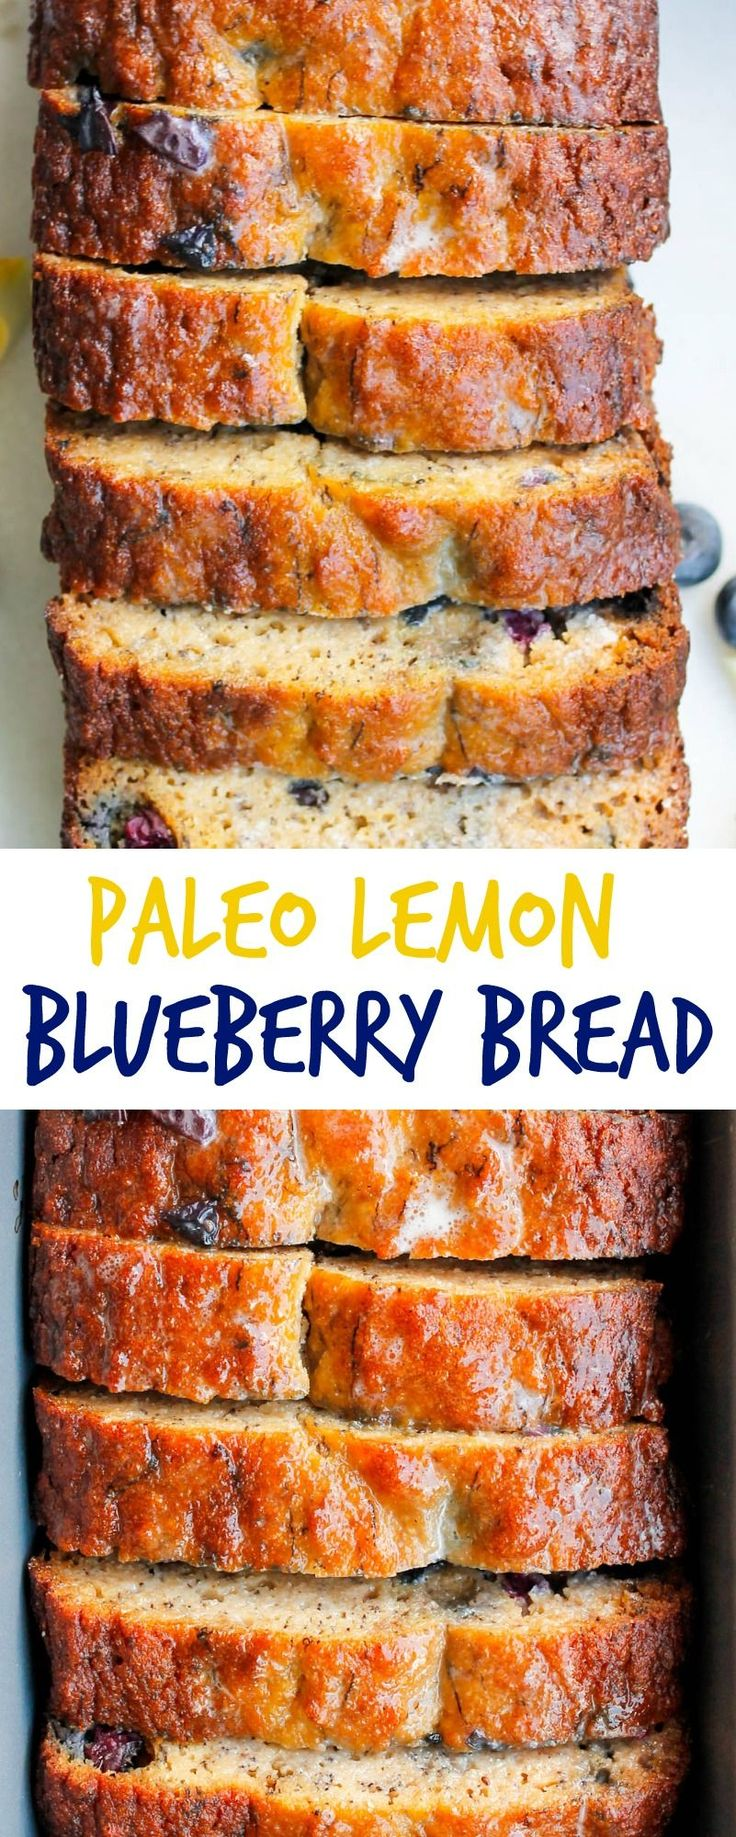 Paleo Lemon Blueberry Bread – This Paleo Lemon Blueberry Bread is a fast and ea…